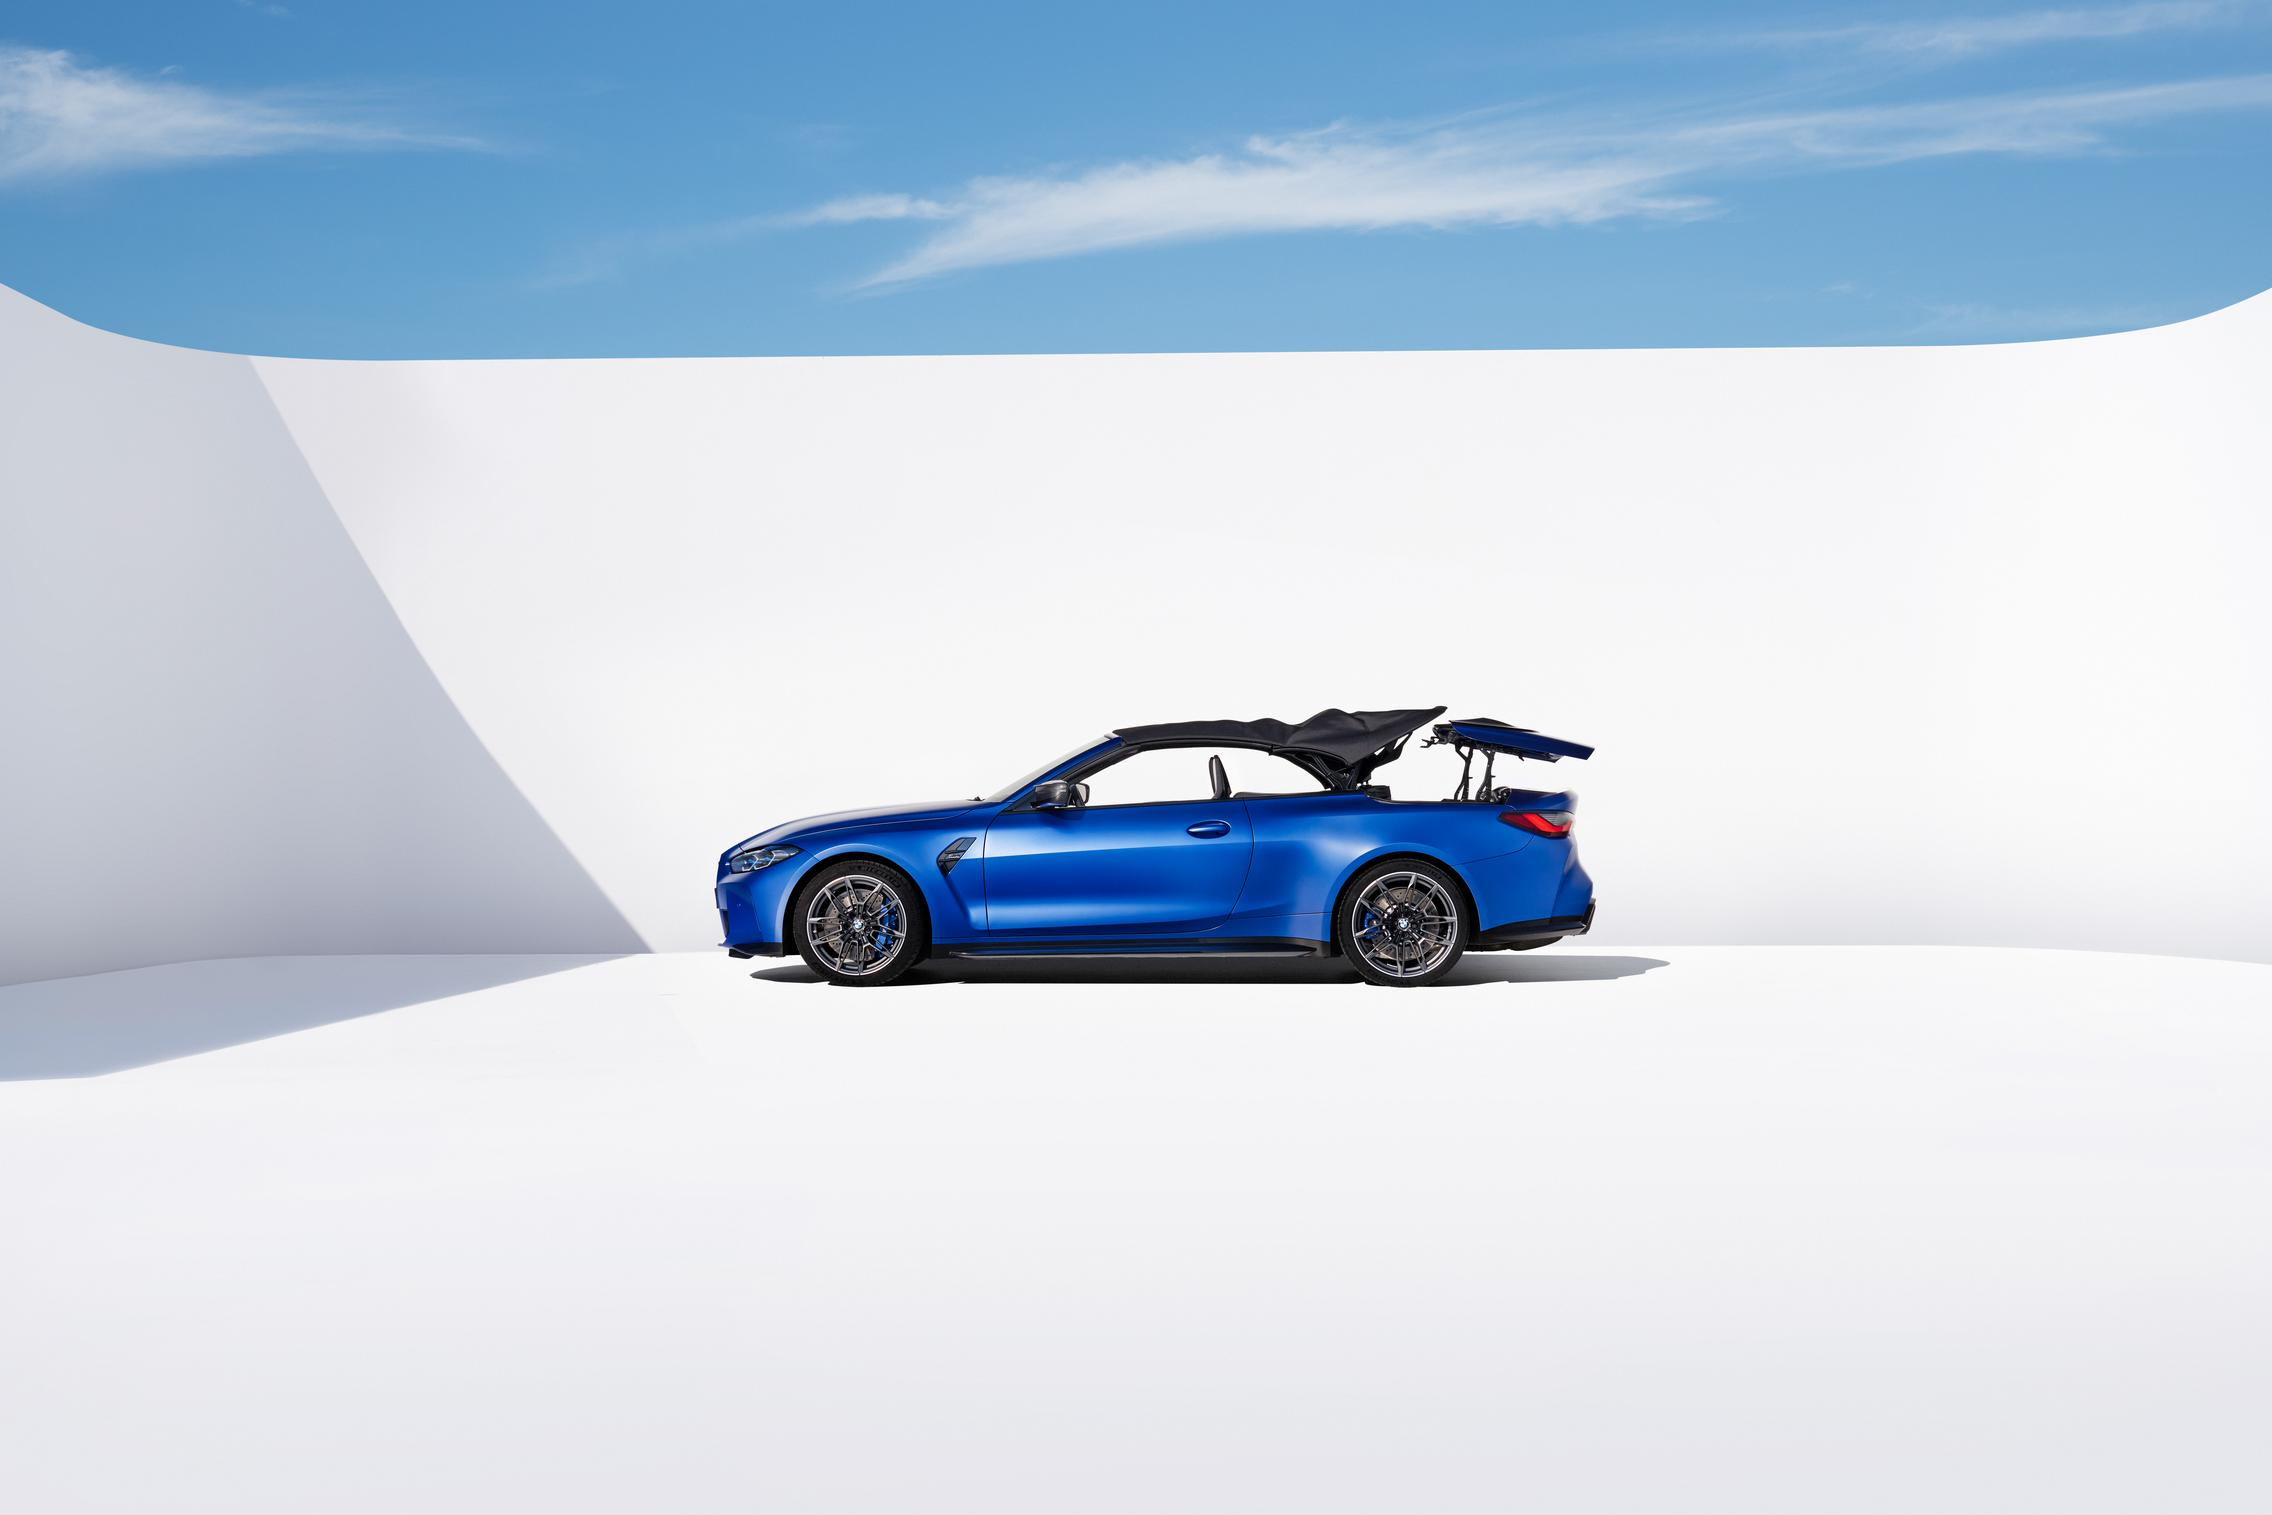 2022 BMW M4 Convertible side